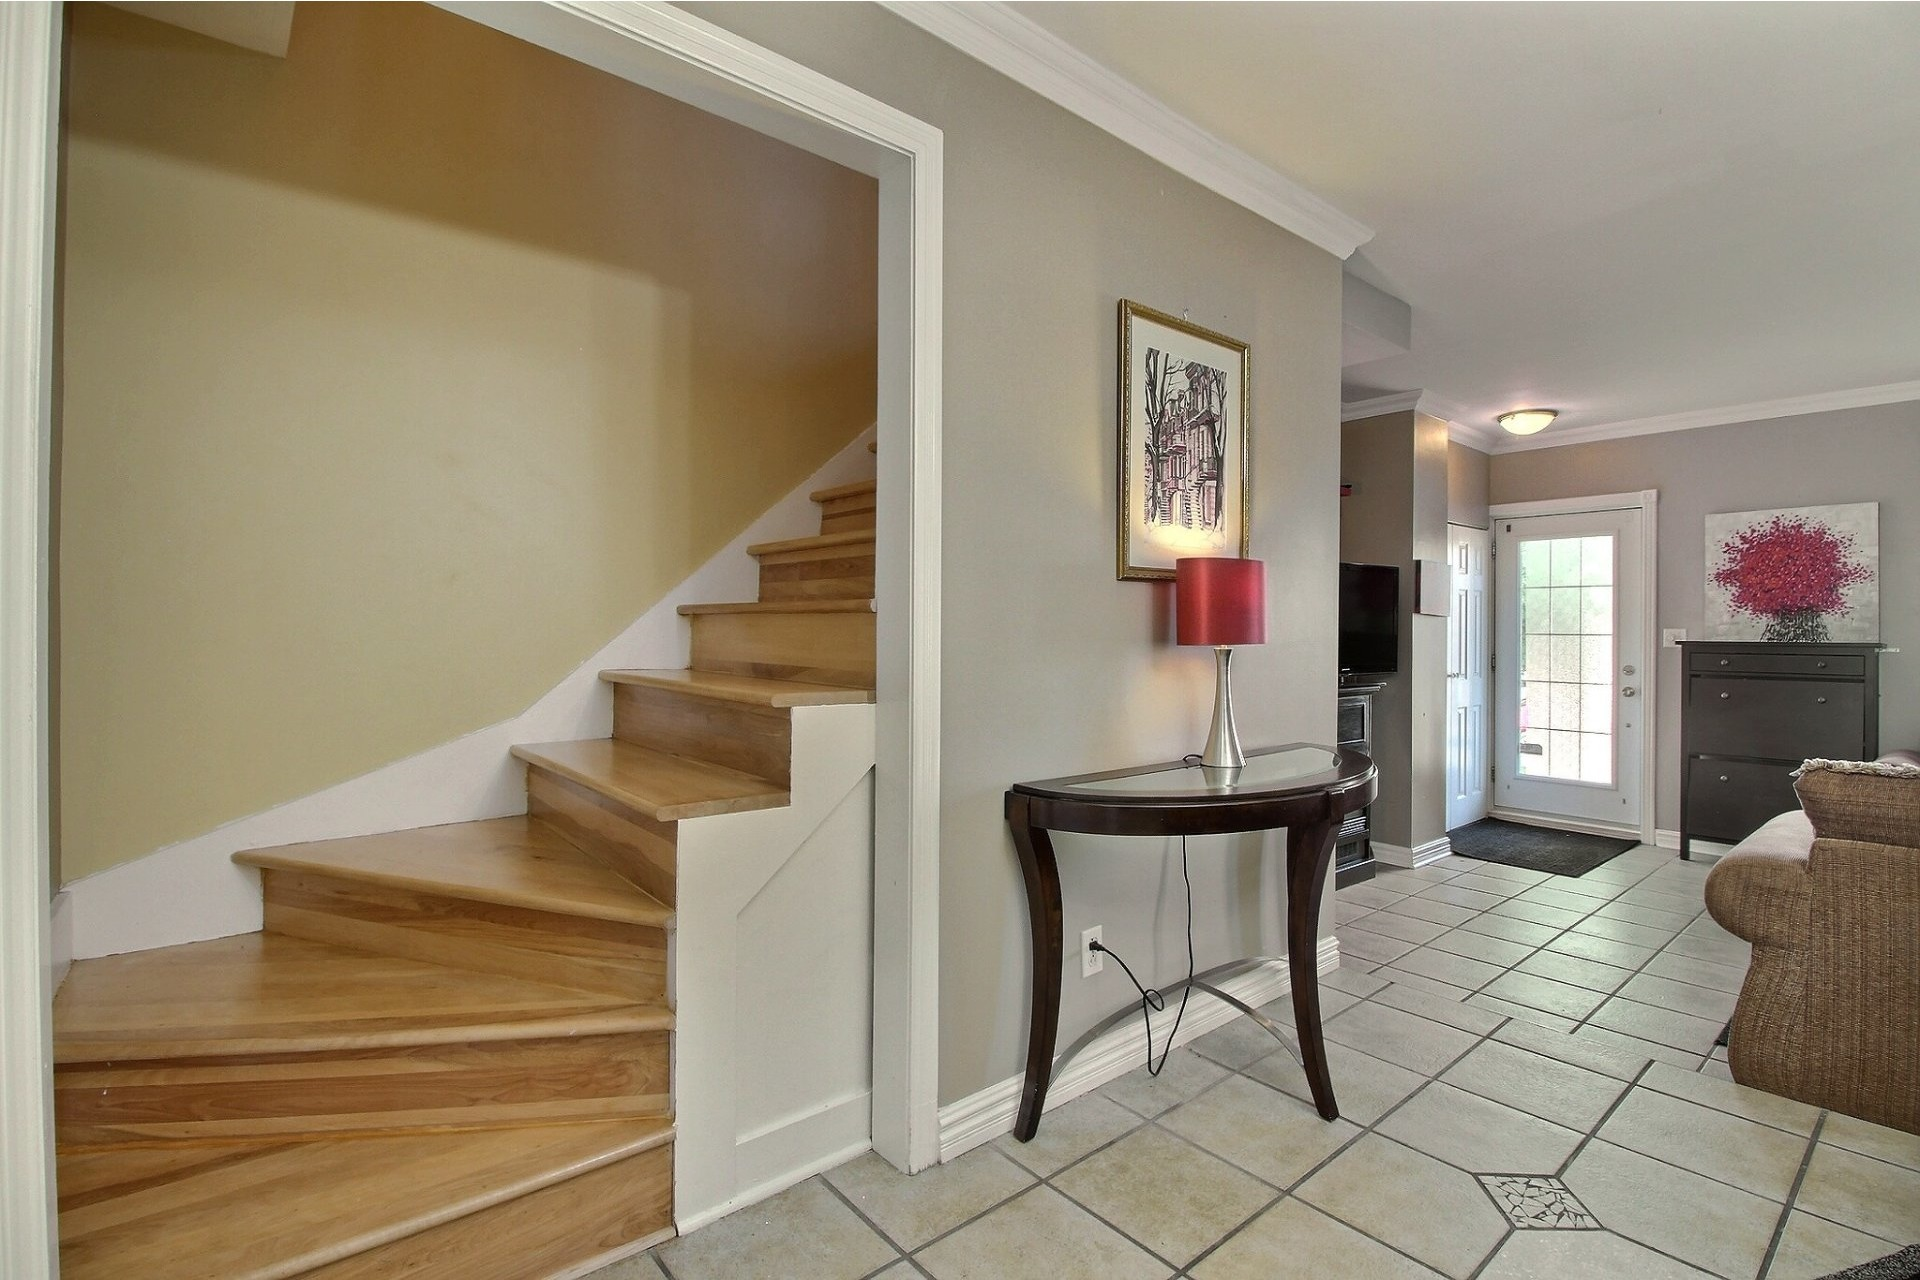 image 11 - House For sale Repentigny Repentigny  - 6 rooms